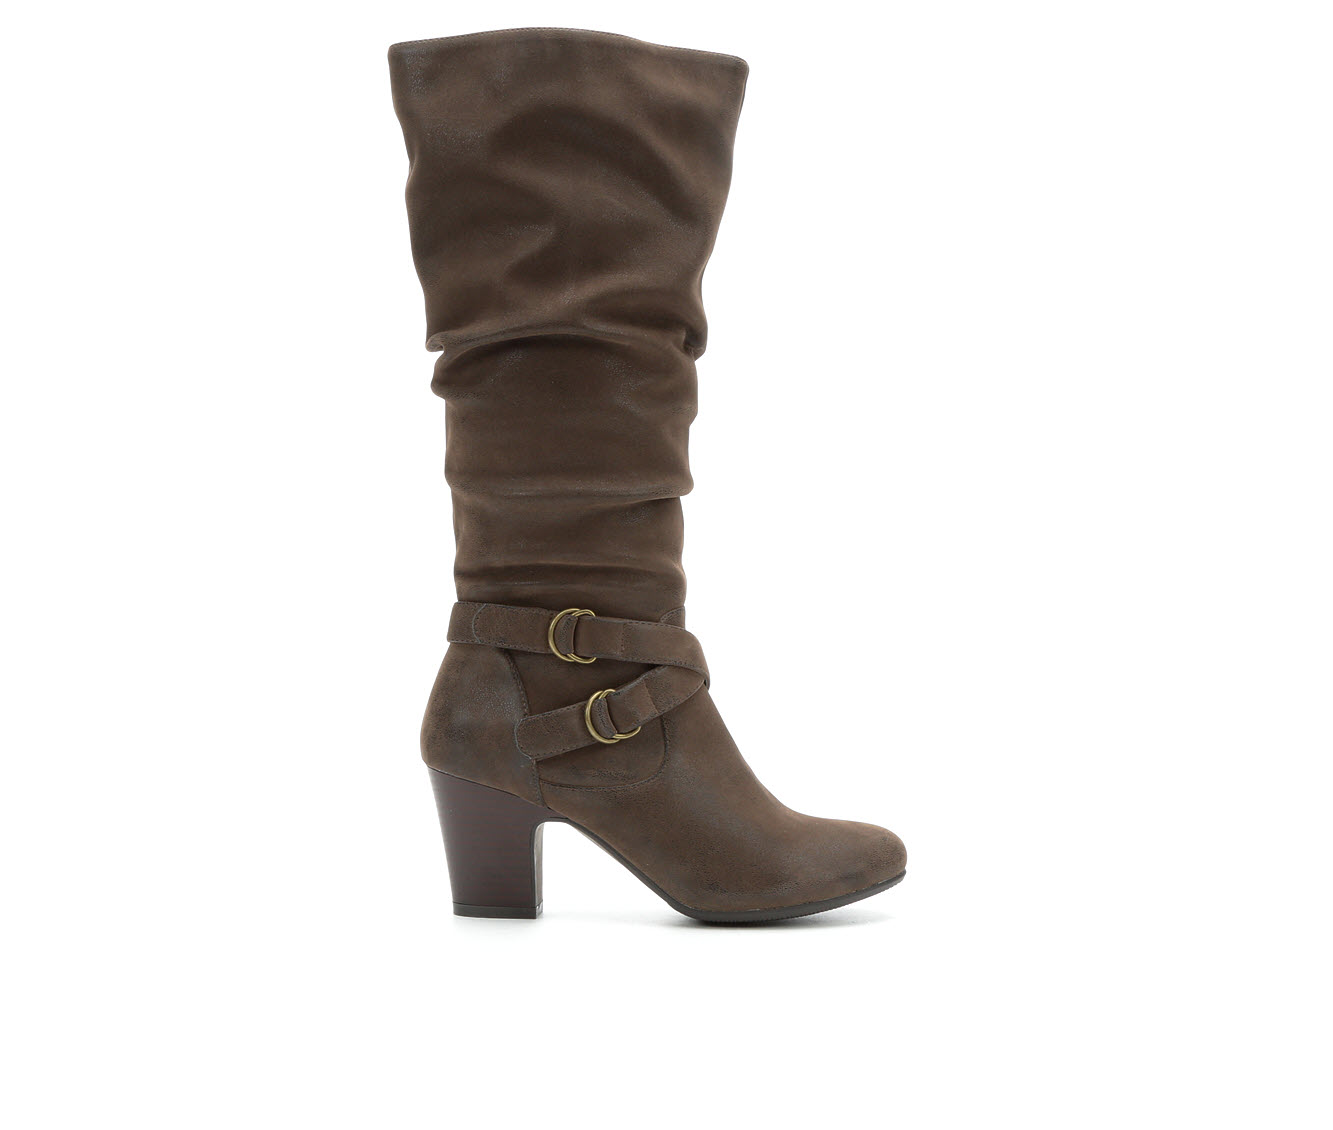 Solanz Poesy Women's Boot (Brown Faux Leather)